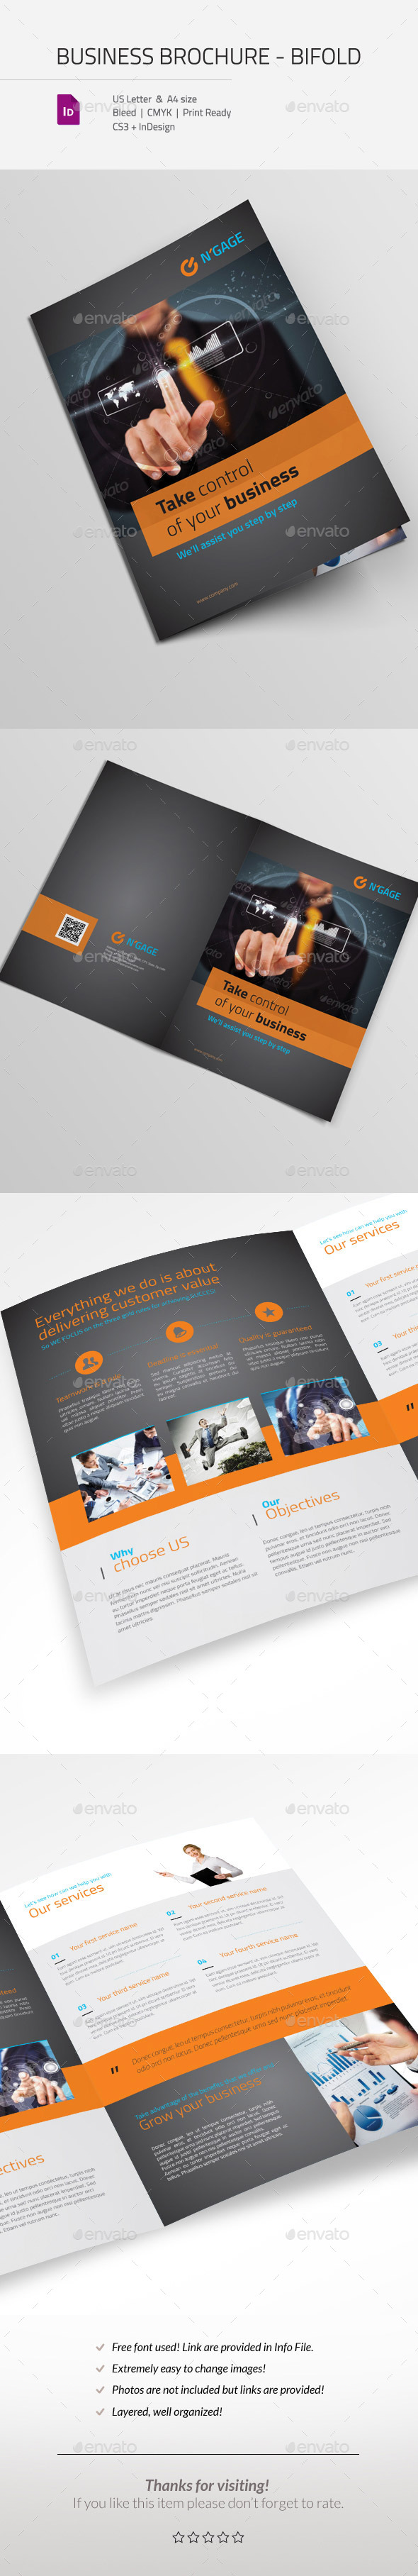 GraphicRiver Business Corporate Brochure Bifold 11002542